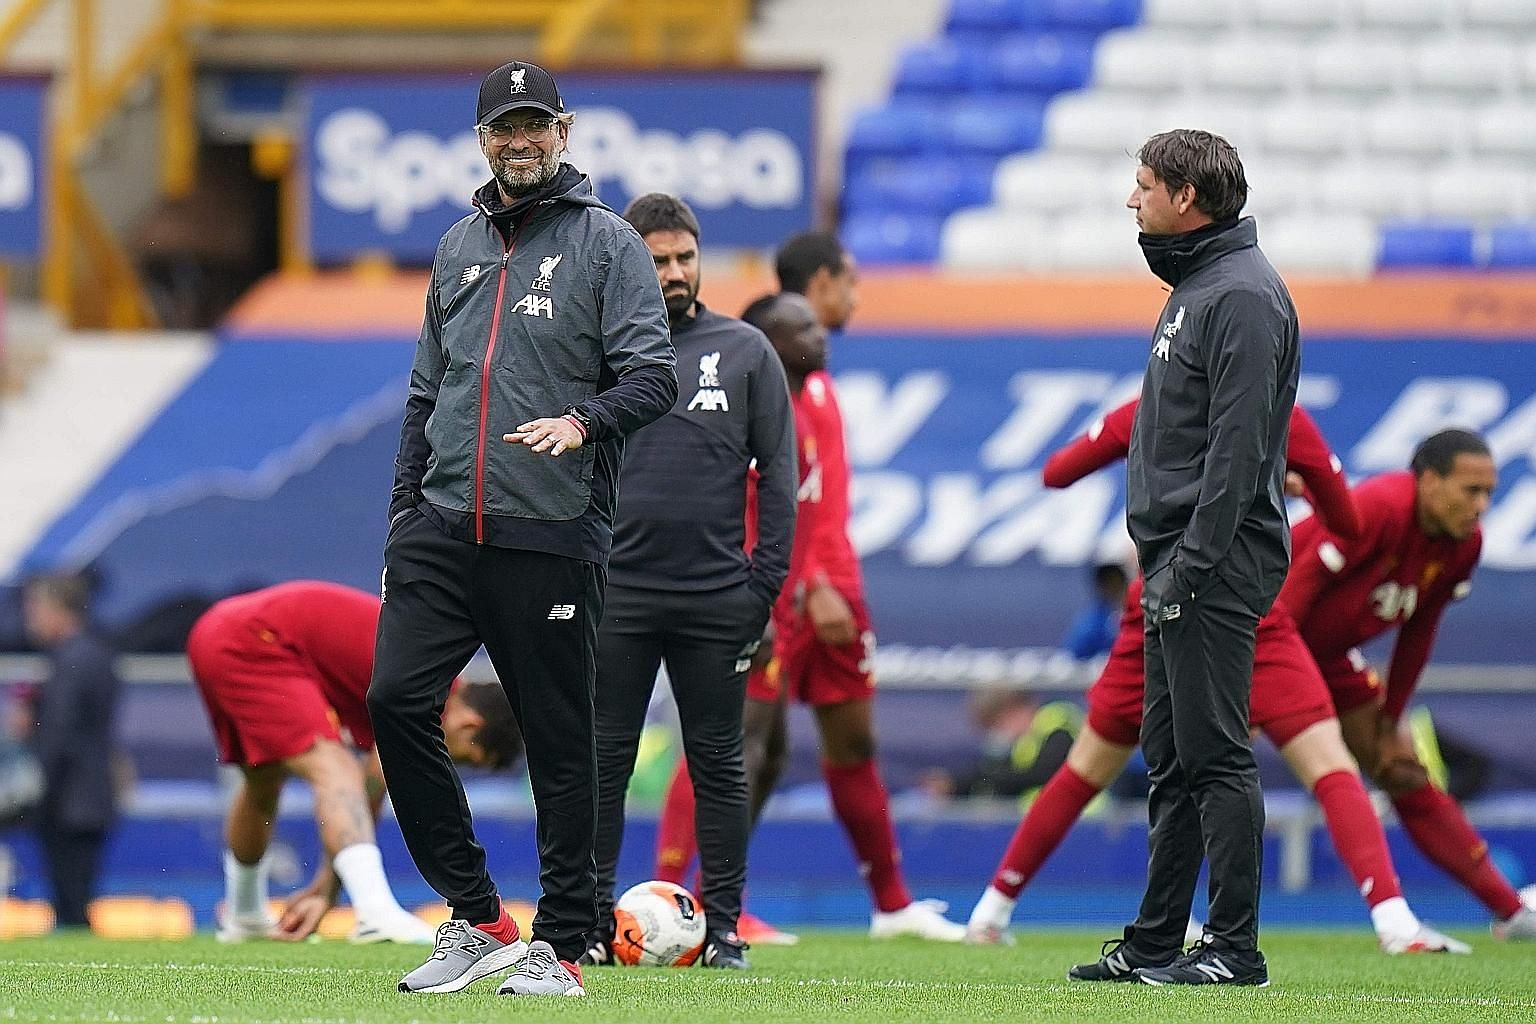 Liverpool's German manager Jurgen Klopp overseeing the warm-up before their match against Everton at Goodison Park on June 21. The Reds won the league with seven games to spare - a record.